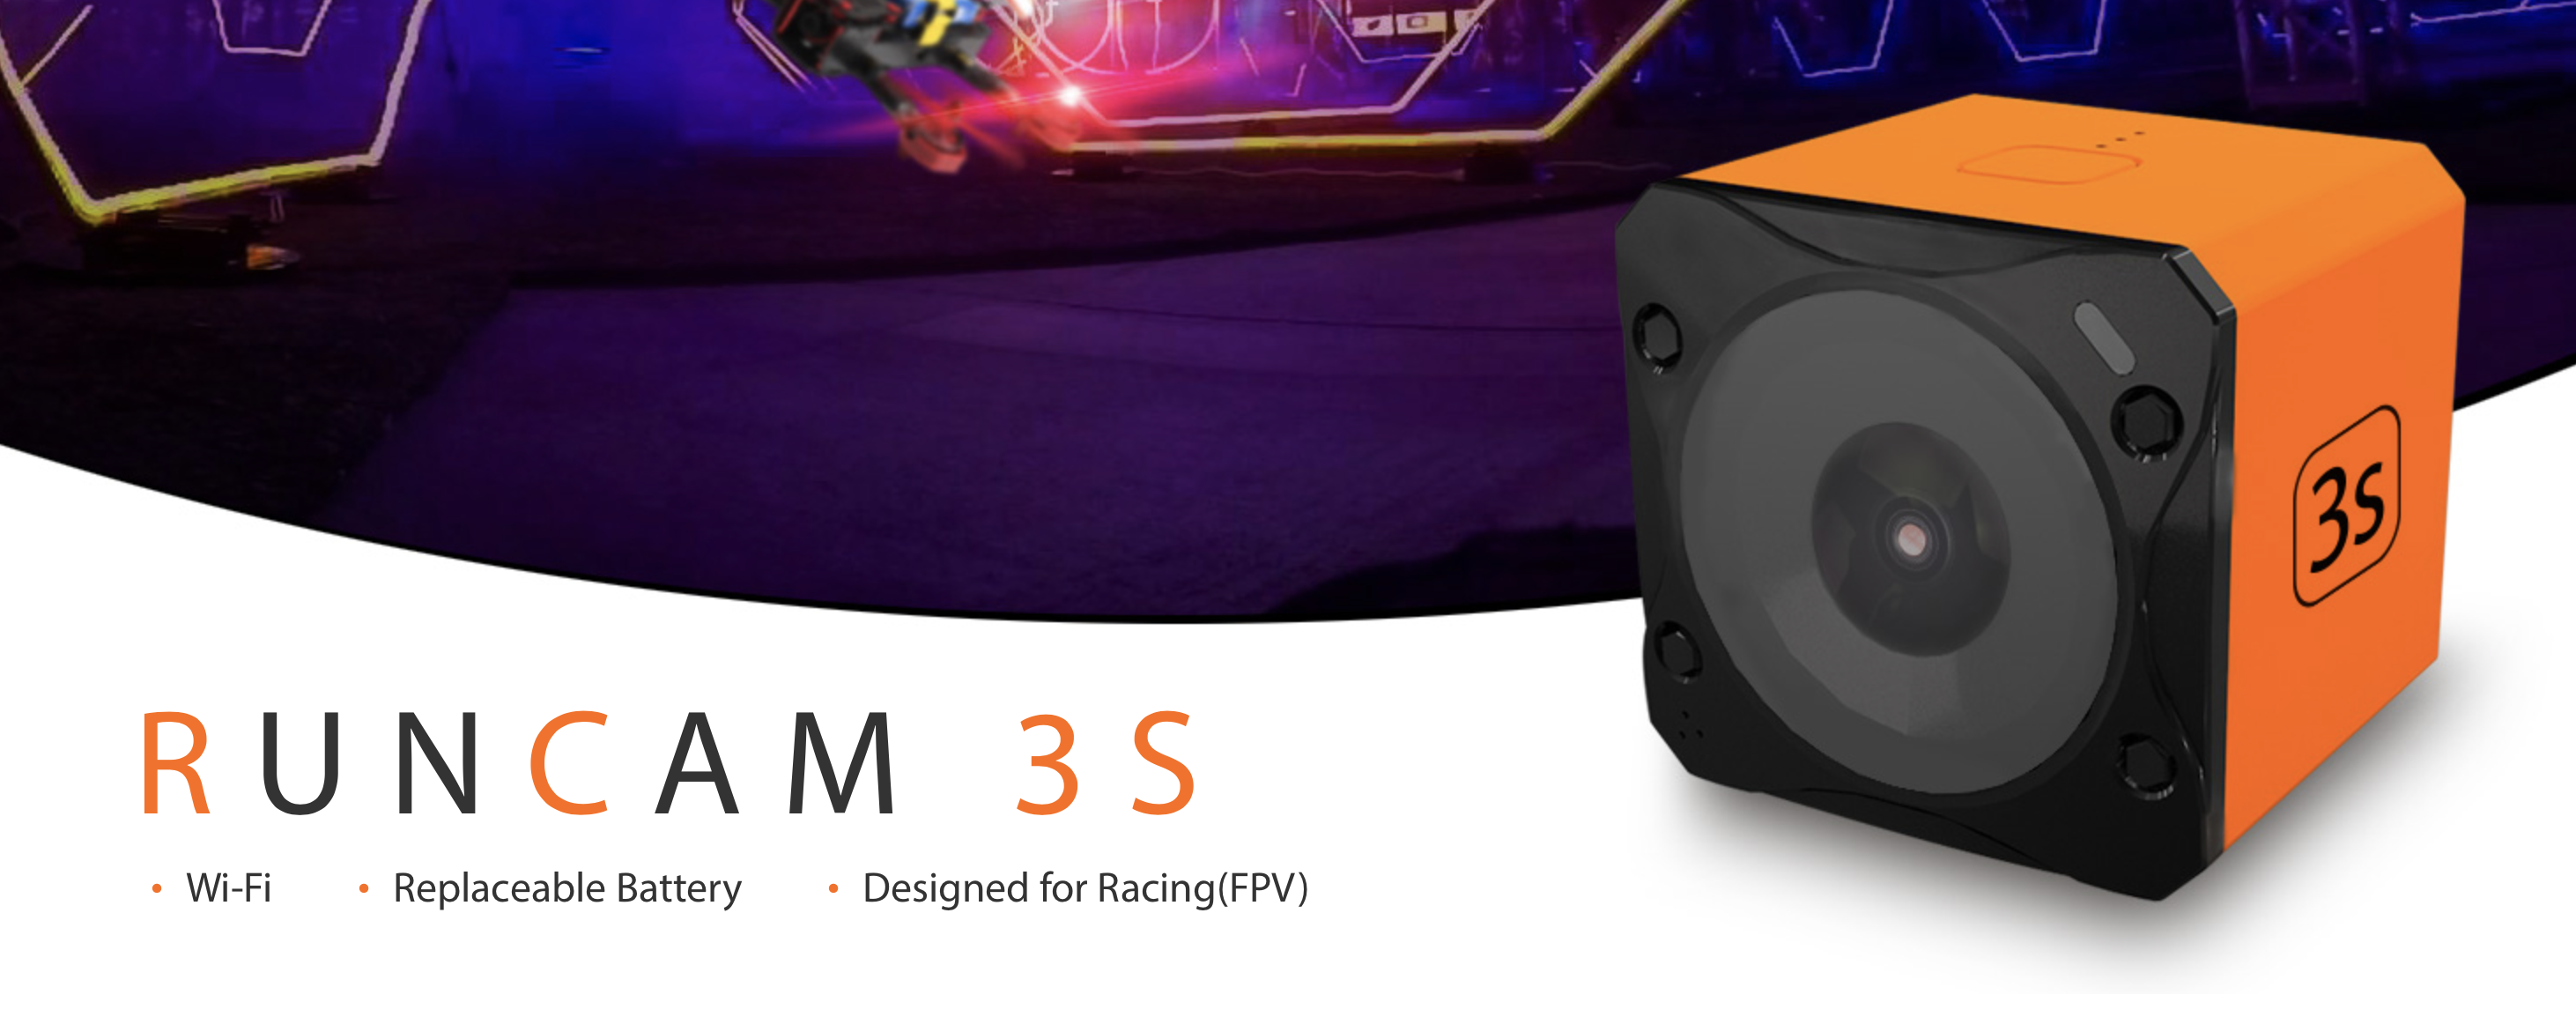 Runcam 3S Hd camera for fpv drone racing and freestyle